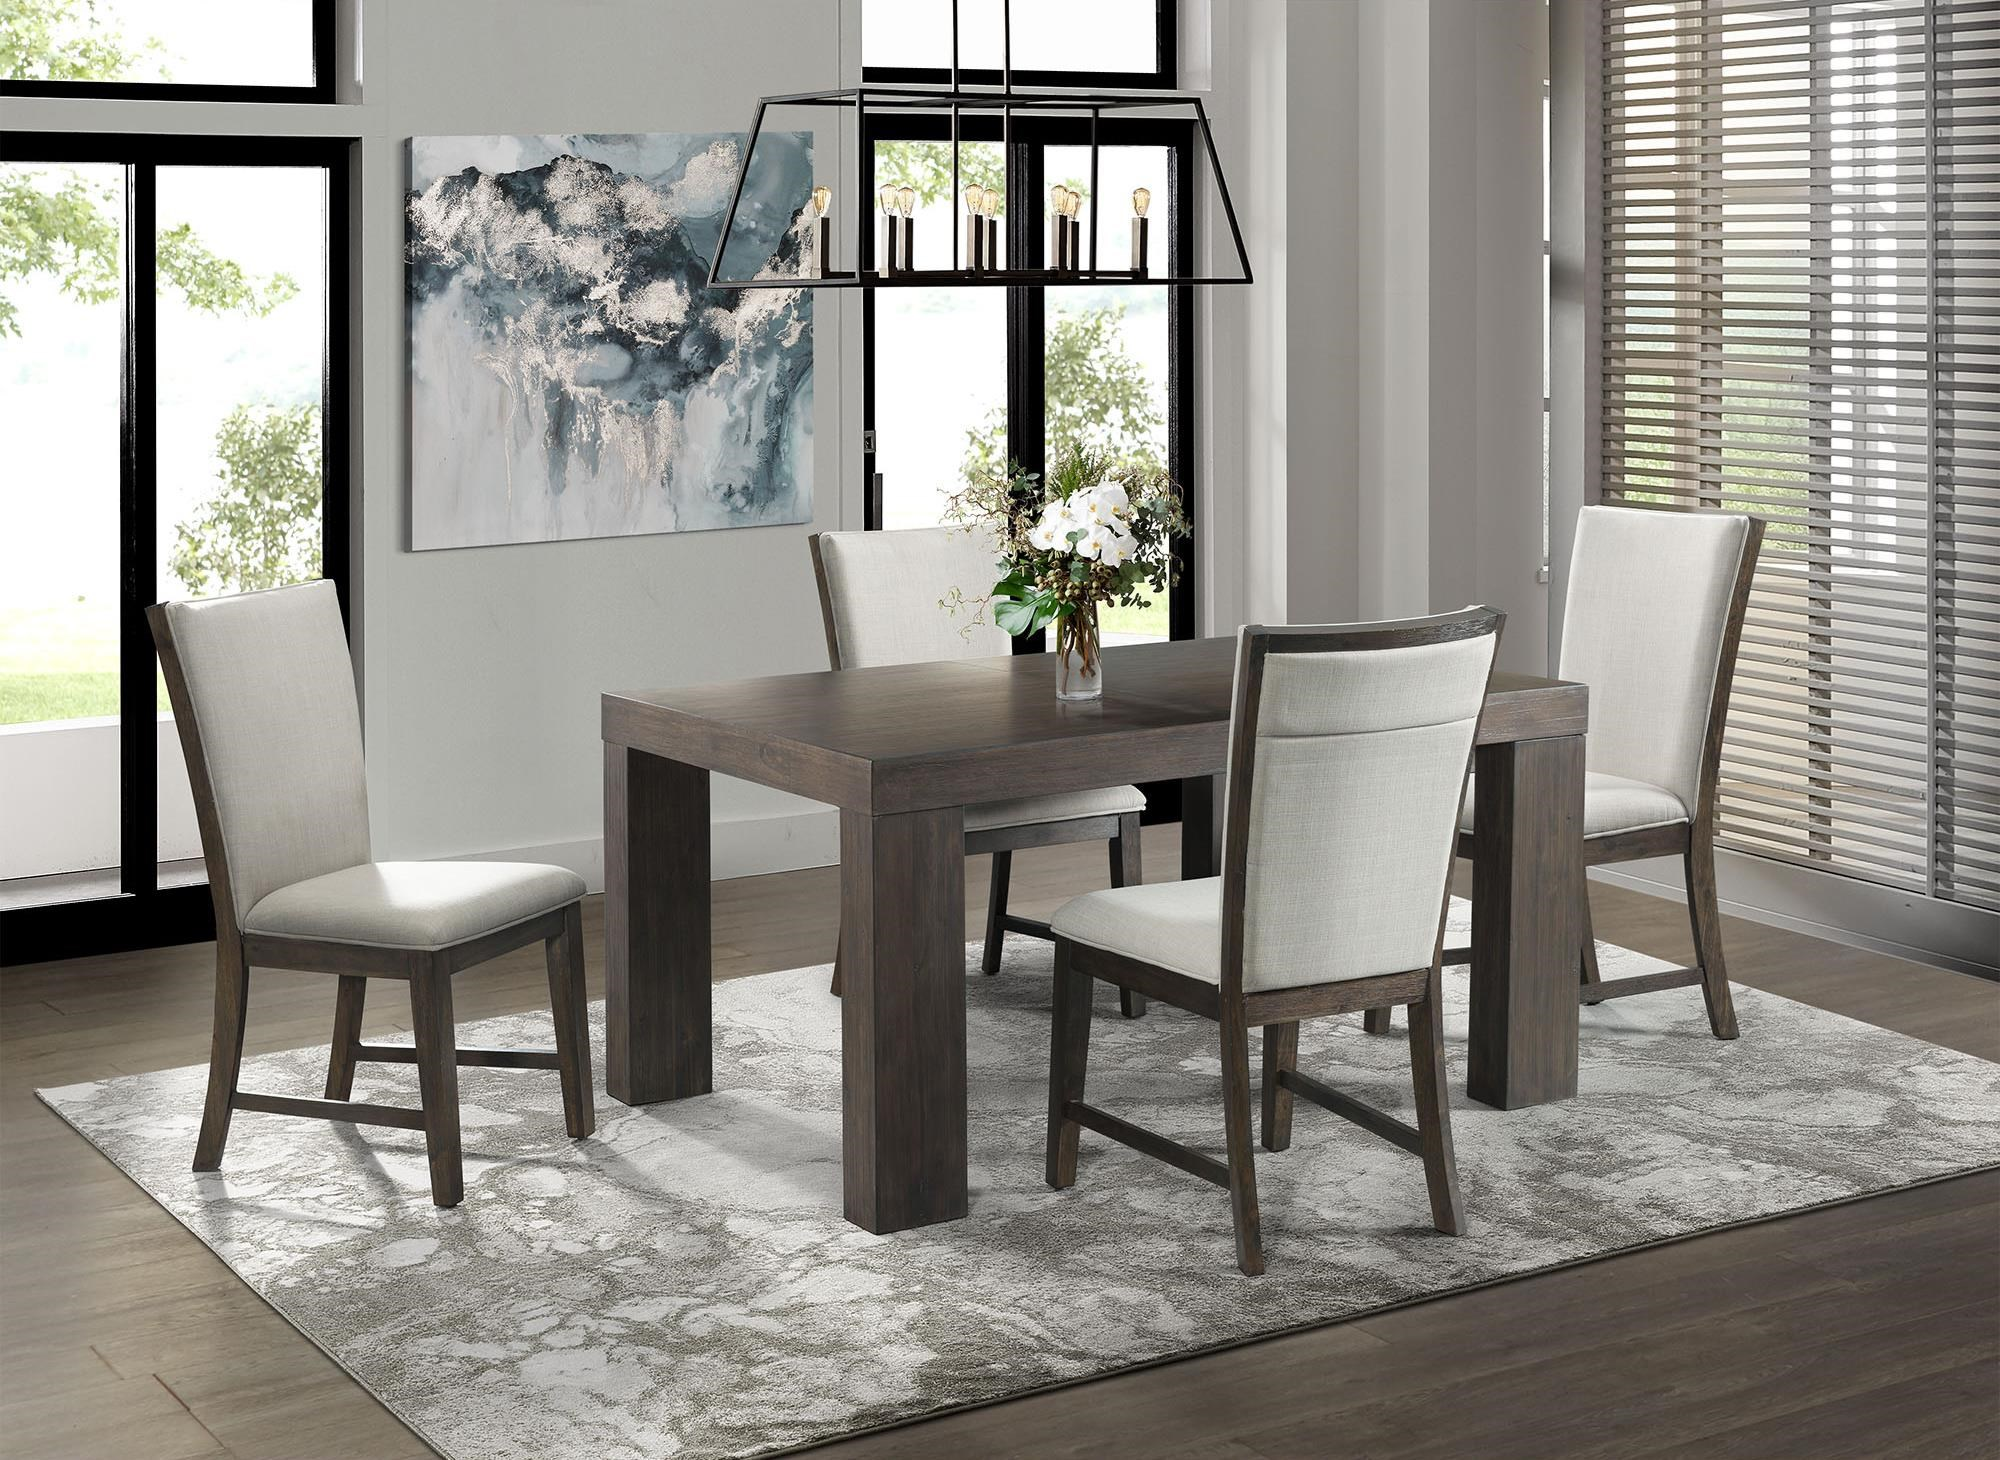 Grady Dining Table Set with 4 chairs by Elements International at Johnny Janosik